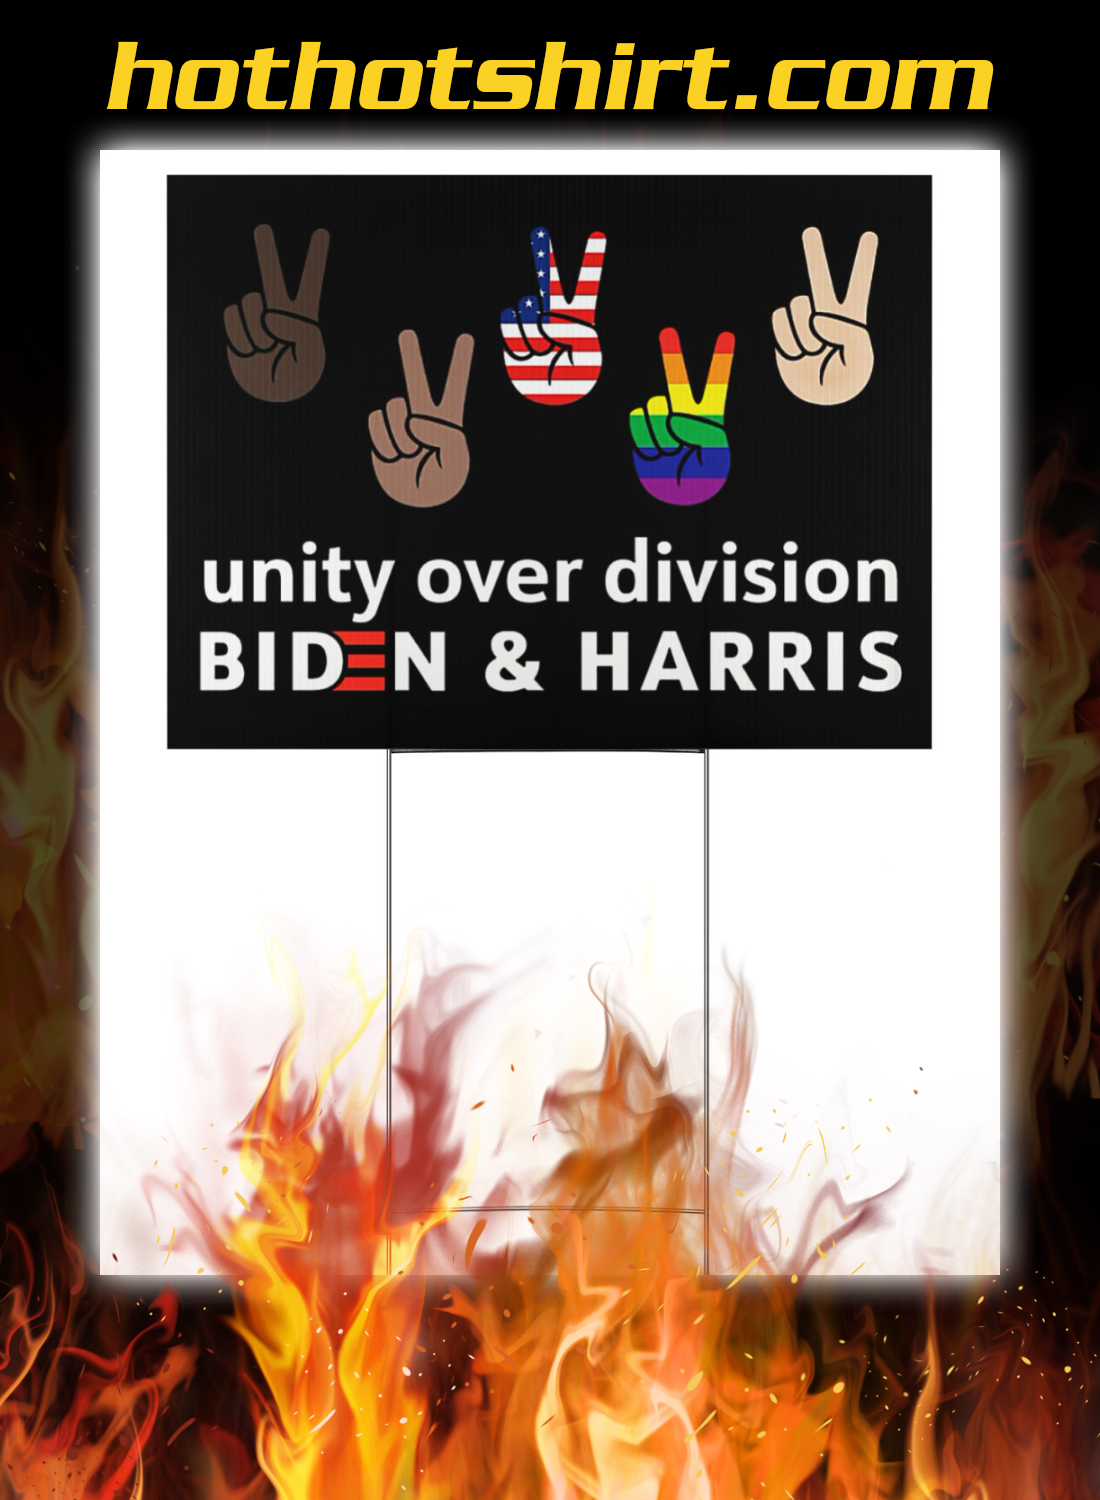 Unity over division biden and harris yard signs 1